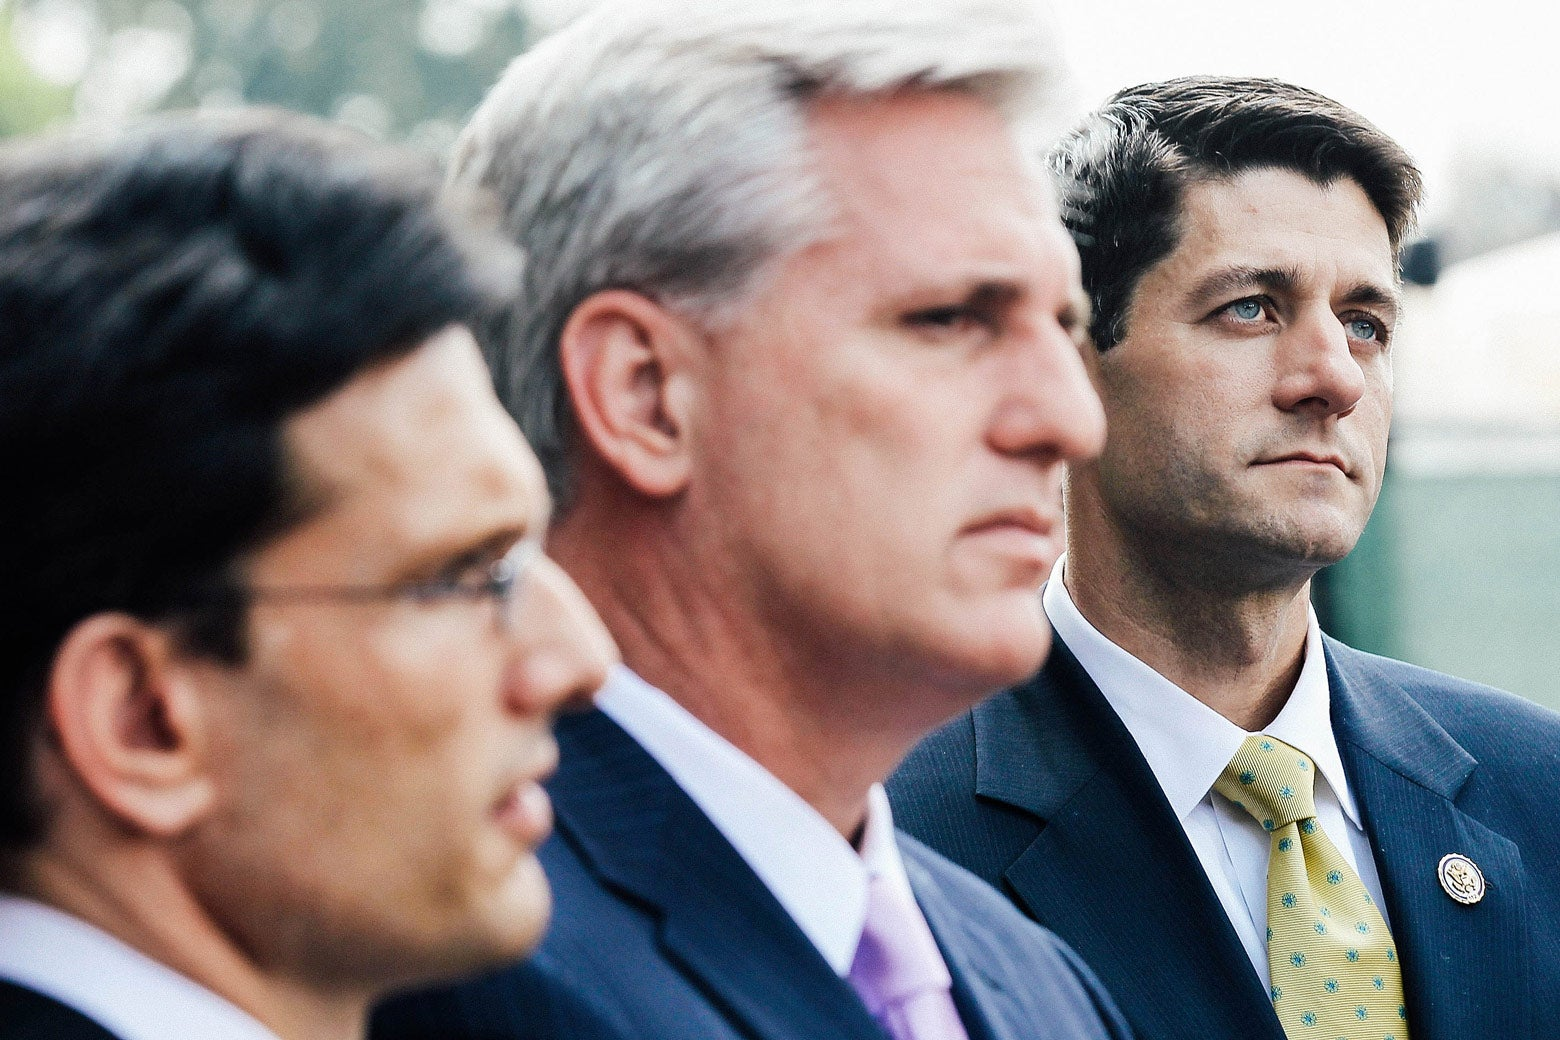 GOP Reps. Eric Cantor, Kevin McCarthy, and Paul Ryan during a June 2011 media briefing in Washington.